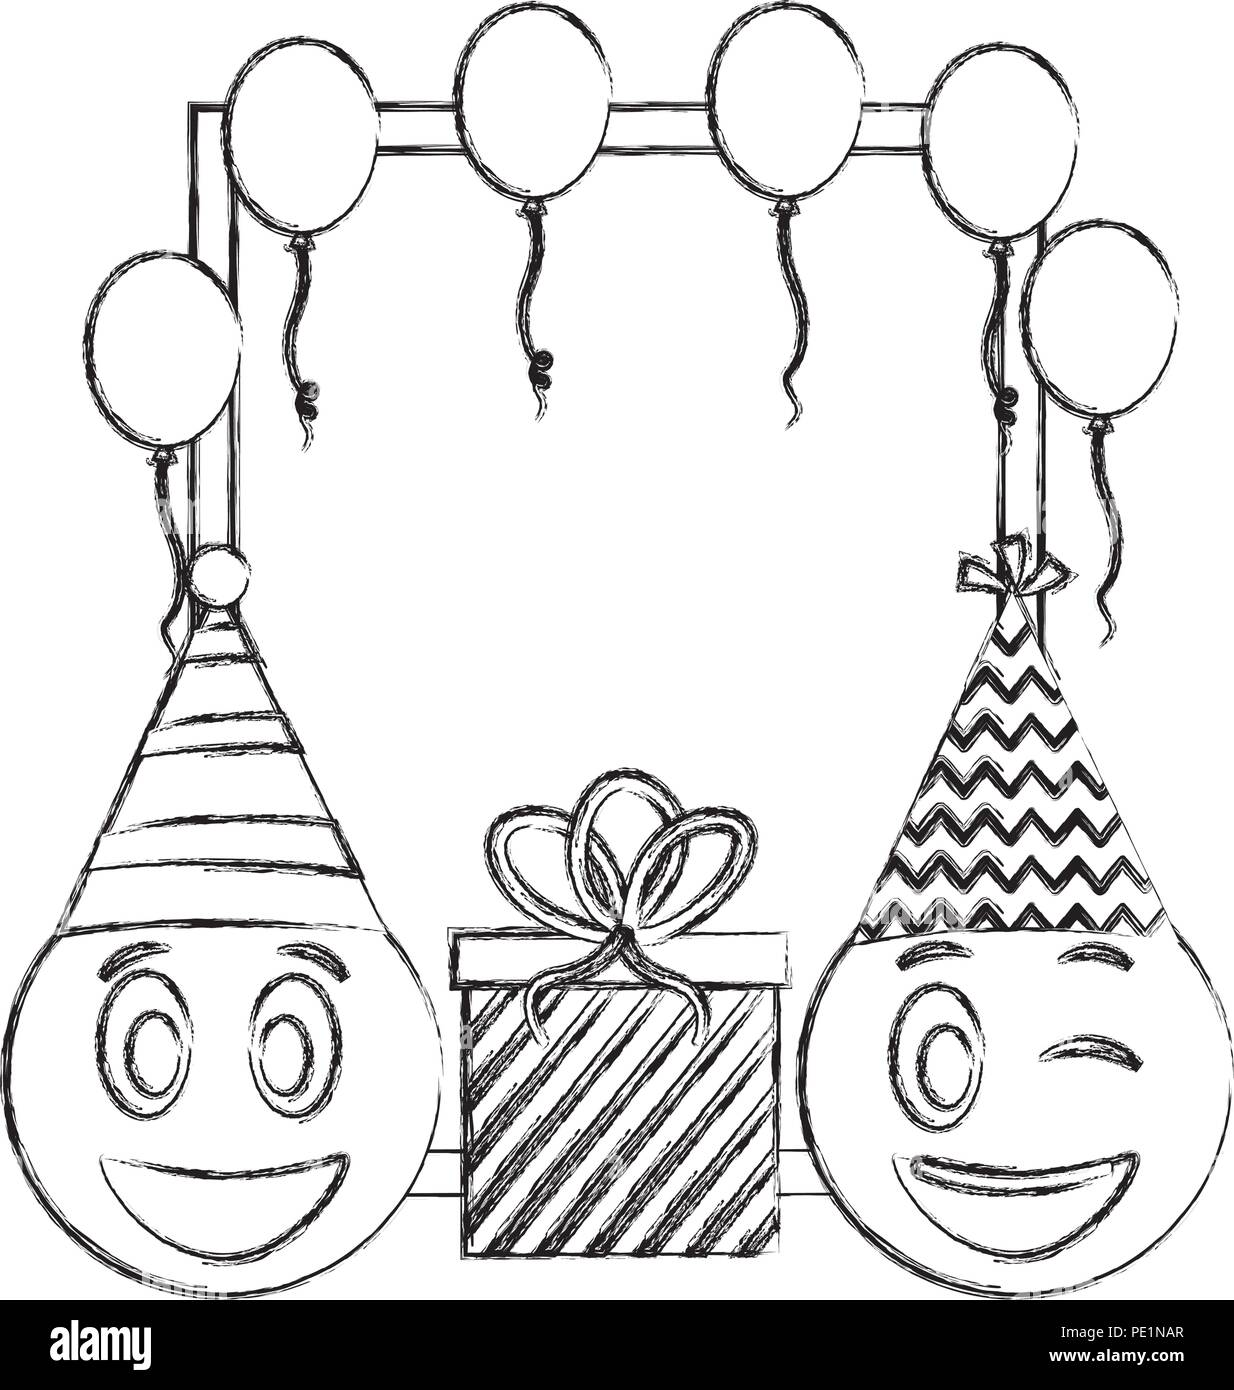 Birthday Emoticon Faces Gift And Frame Balloons Hand Drawing Design